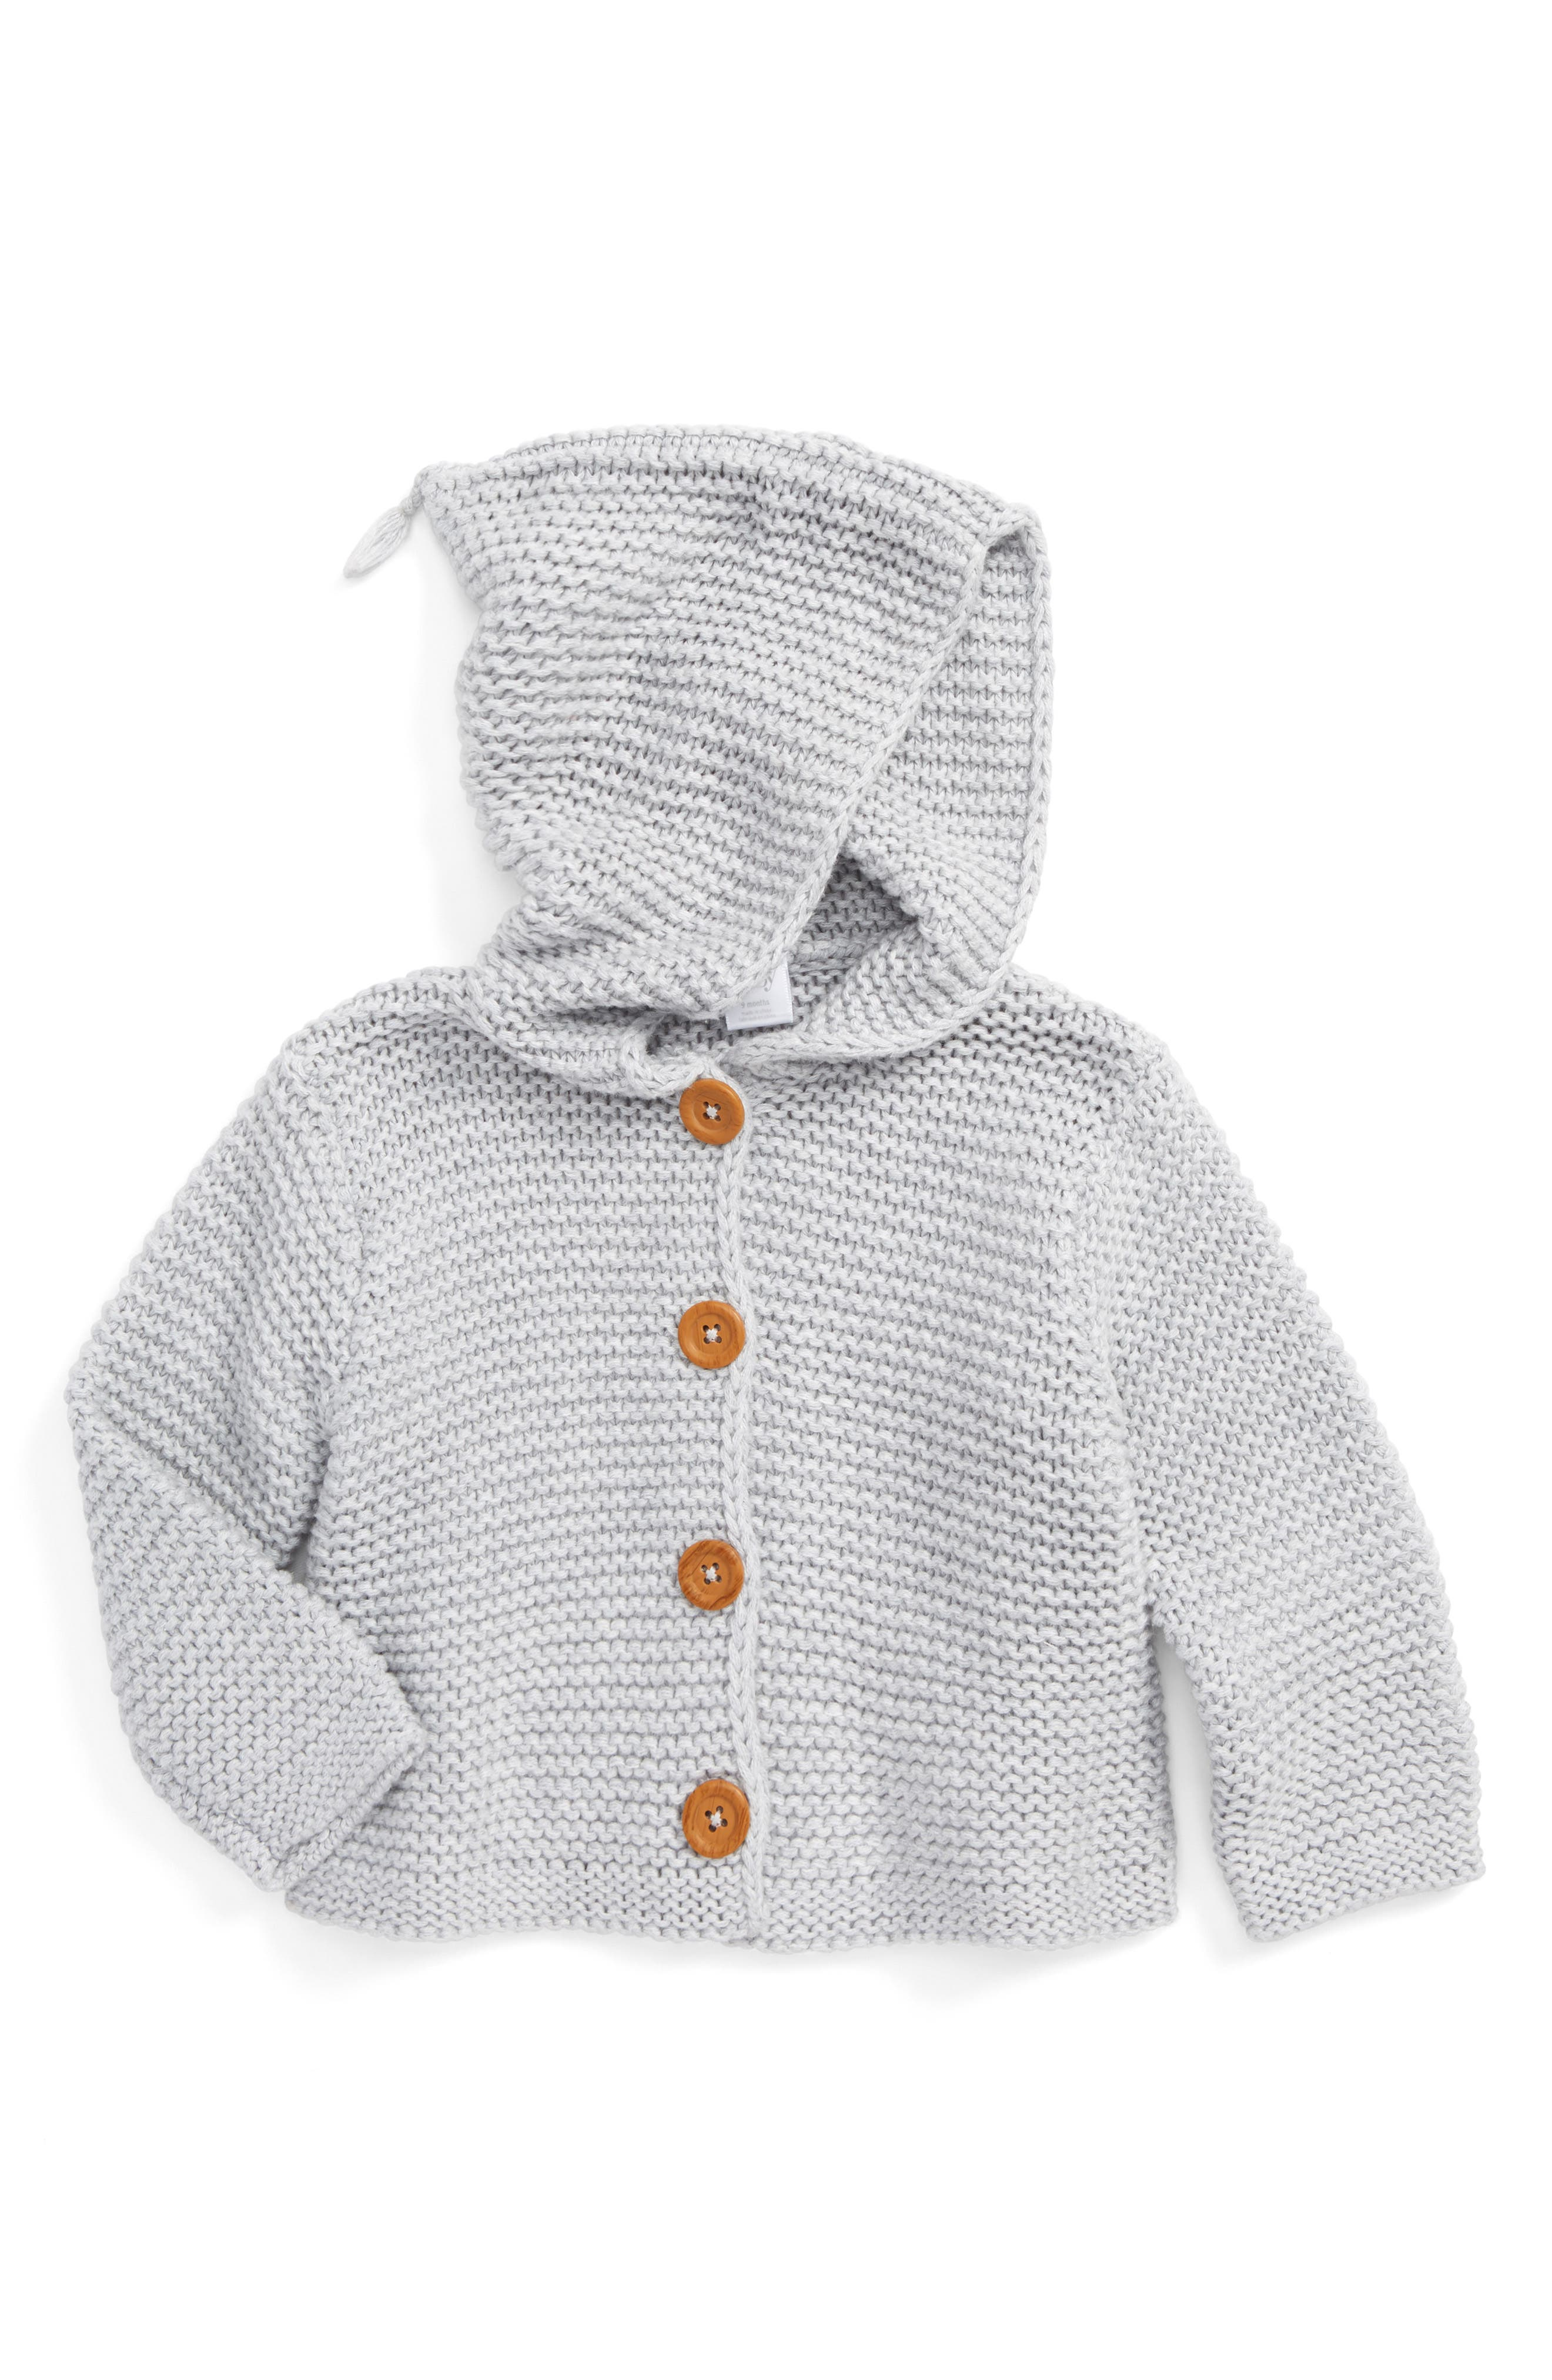 NORDSTROM BABY, Organic Cotton Hooded Cardigan, Main thumbnail 1, color, GREY ASH HEATHER